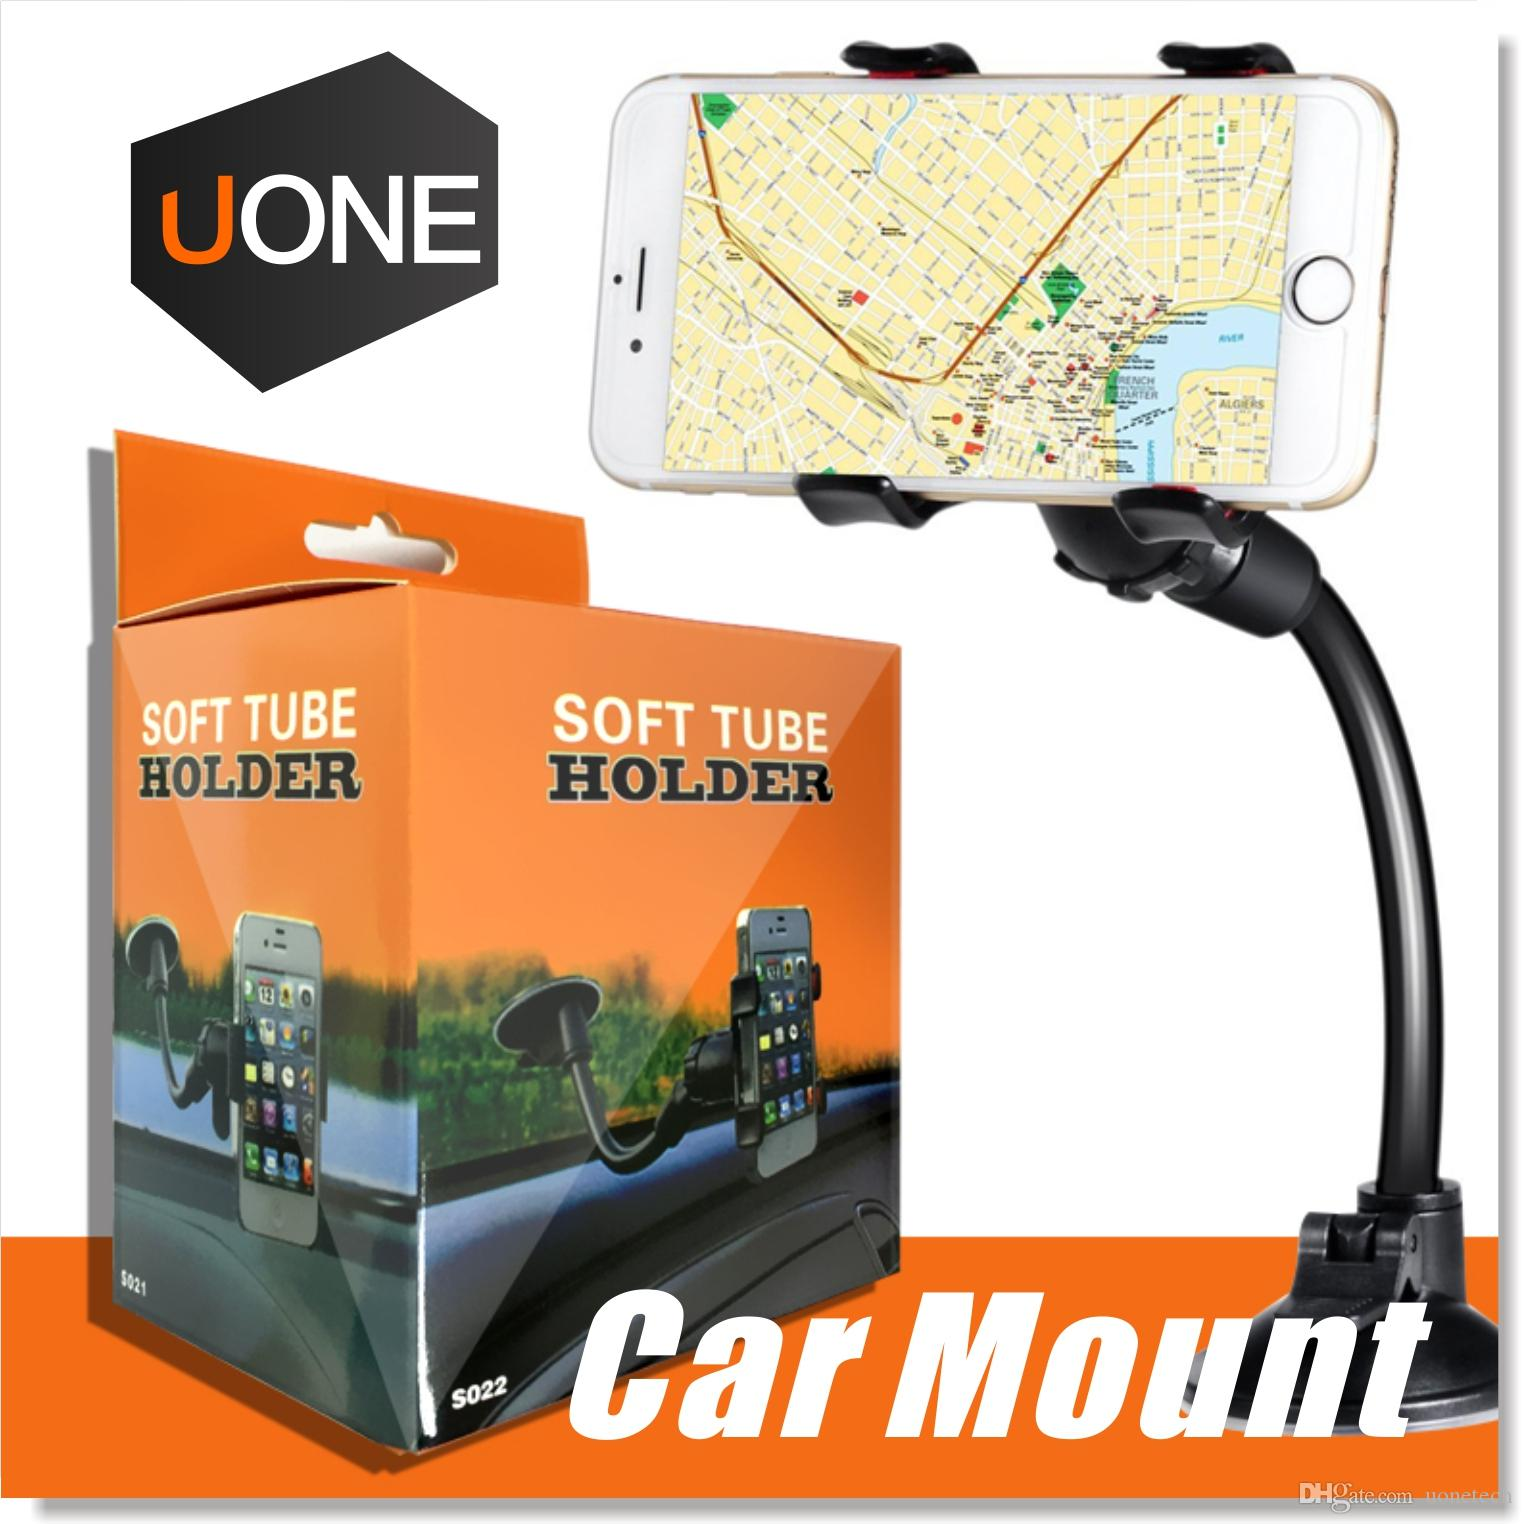 [UPDATE VERSION] Car Mount,Long Arm Universal Windshield Dashboard Cell Phone Car Holder with Strong Suction Cup and X Clamp for iPhone 6/6s